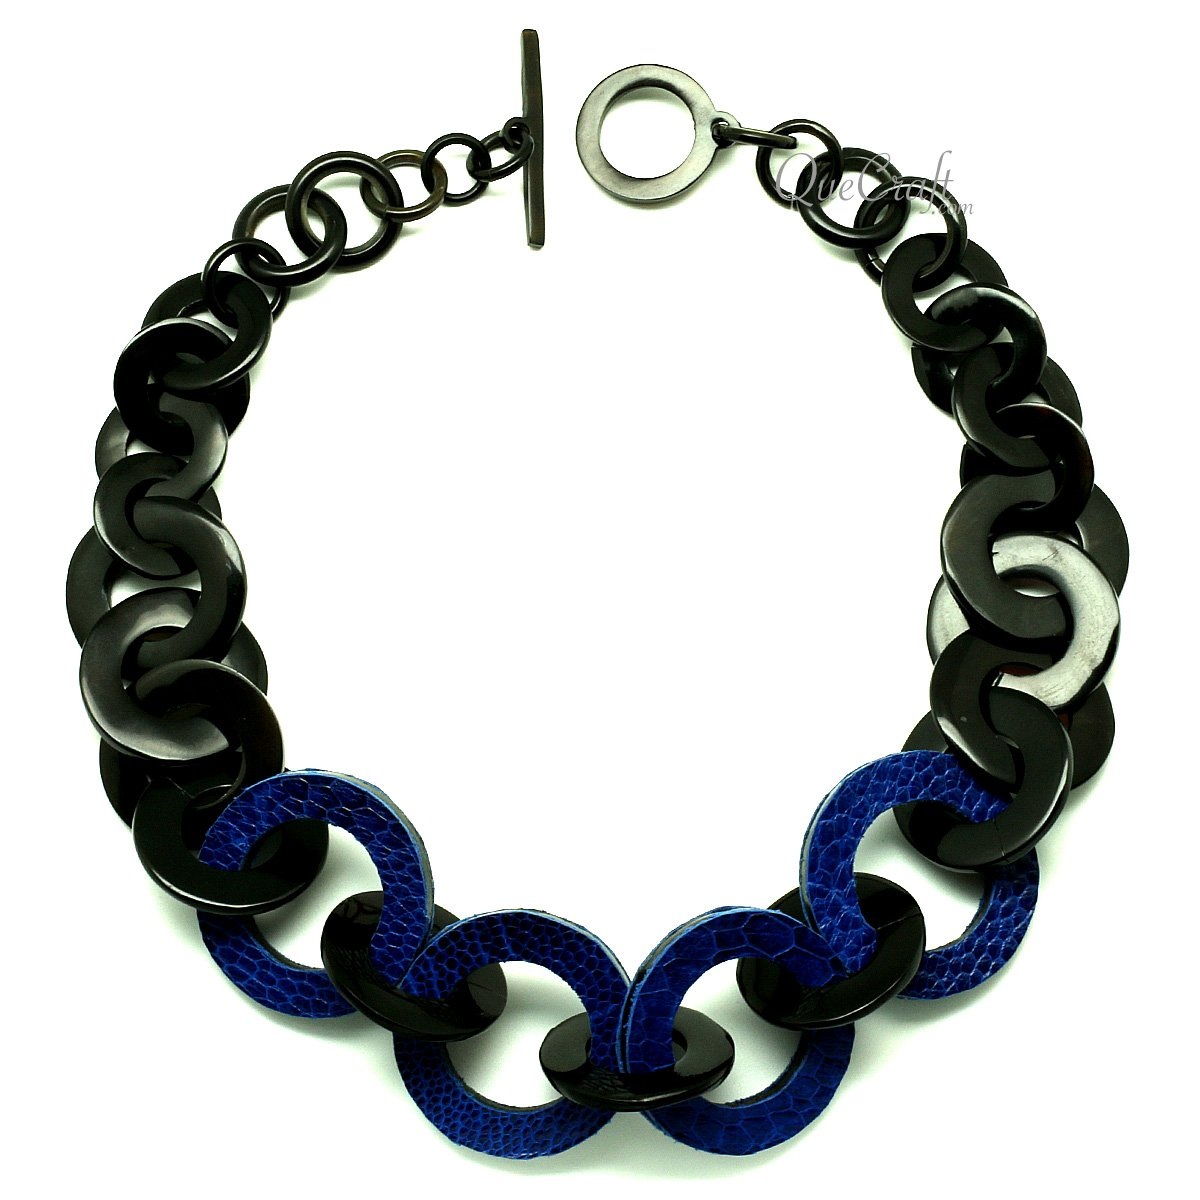 Horn & Leather Chain Necklace #12938 - HORN.JEWELRY